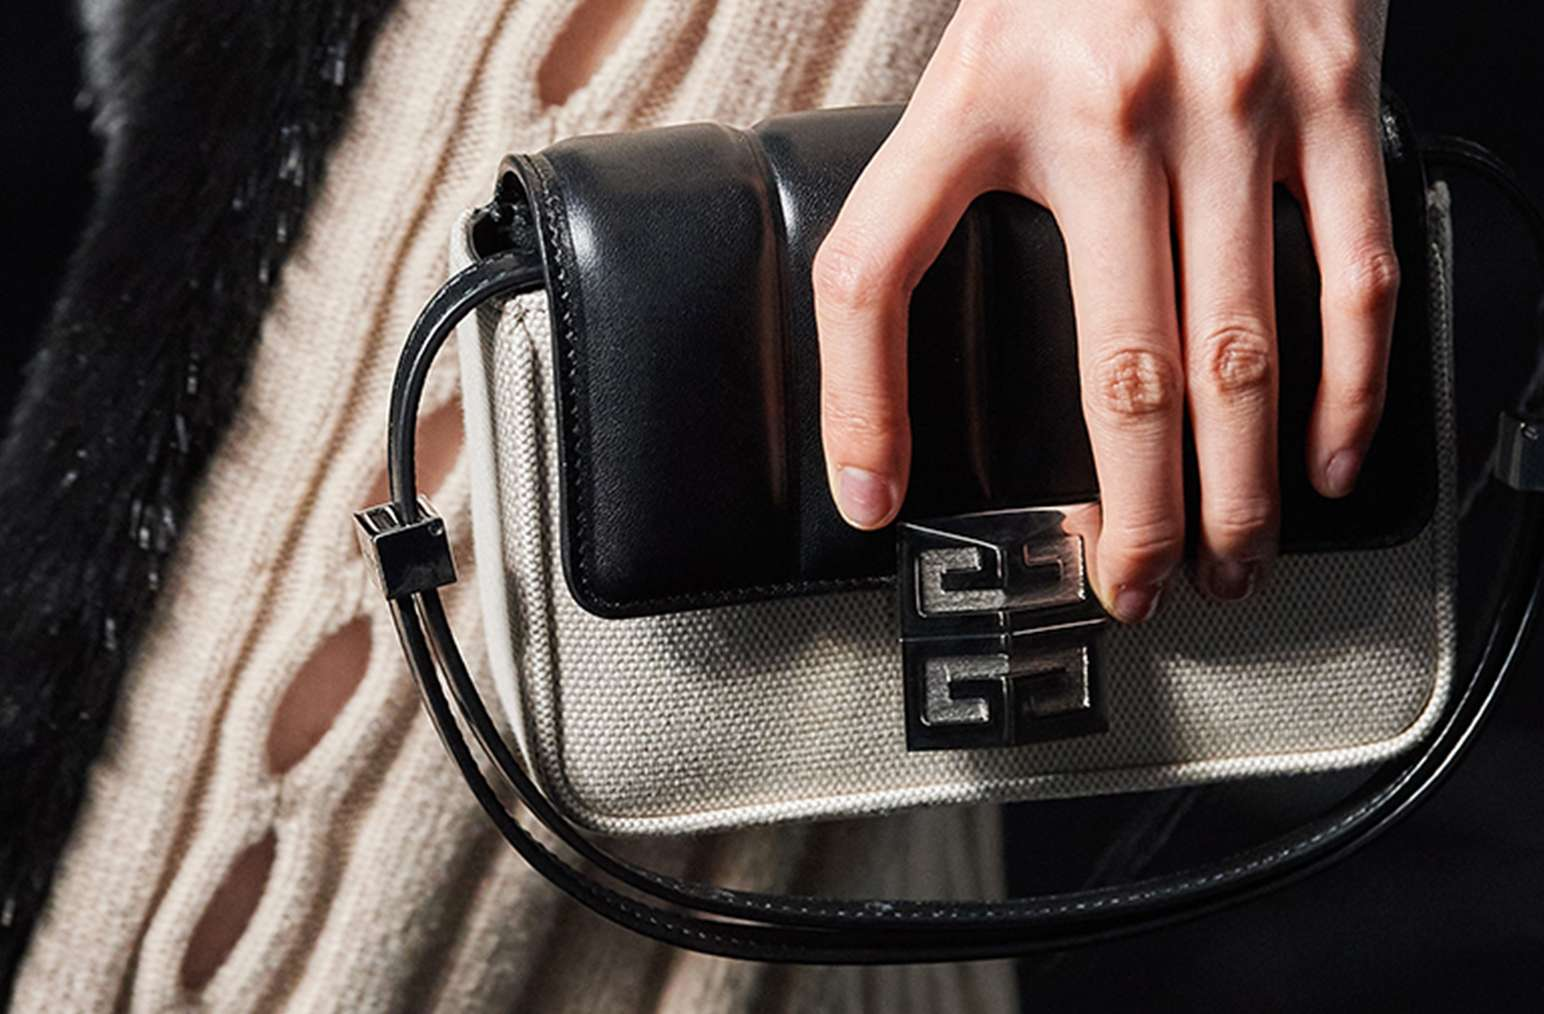 4GGivenchy_0001_Givenchy-F21-052_0001_CLP_134